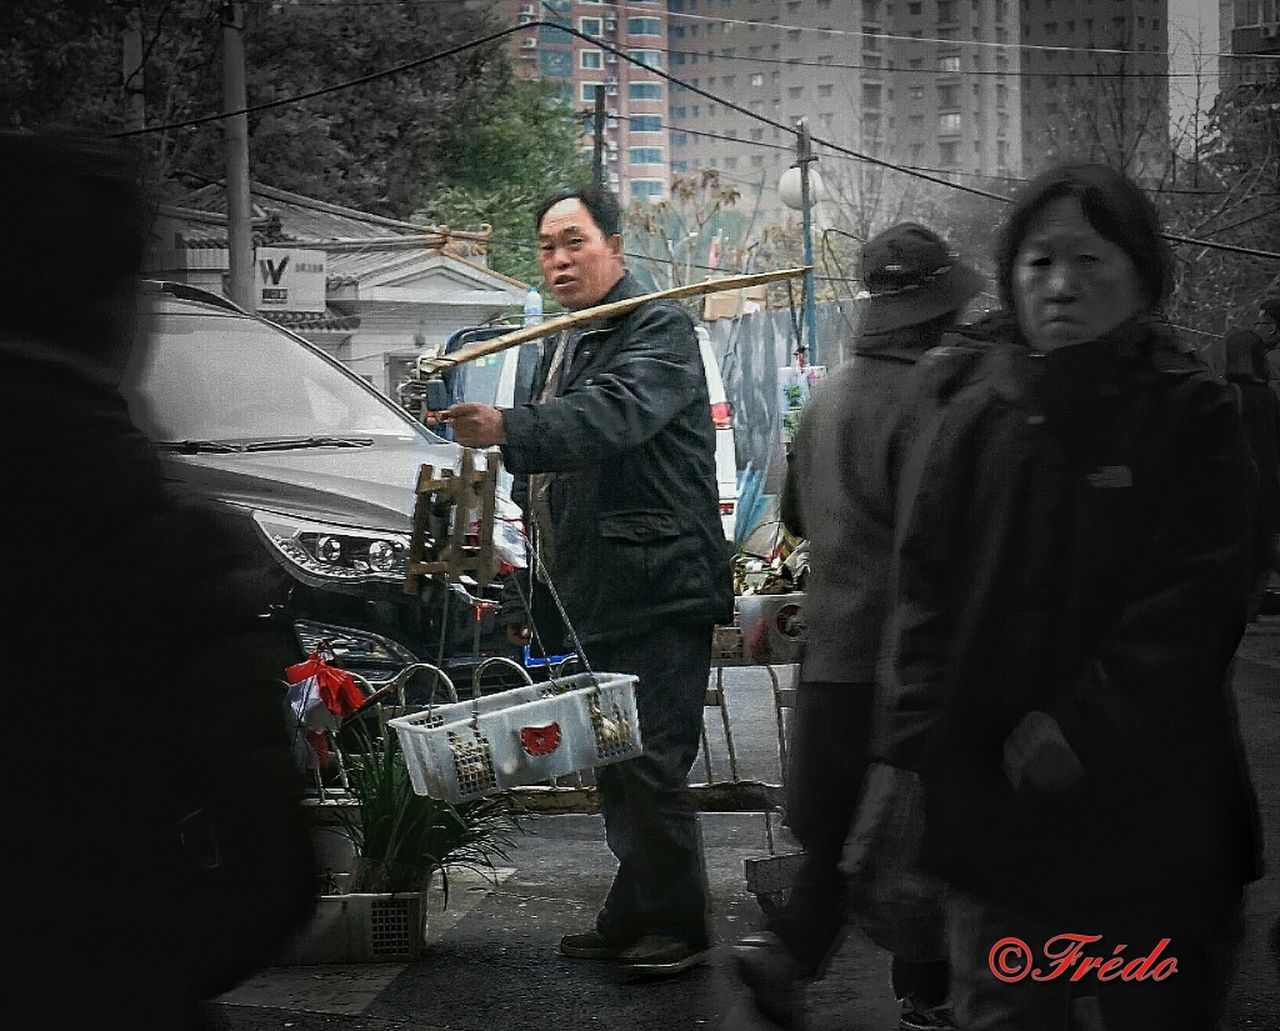 Le Regard Le Regard Est Un Language Dans Tout Les Pays  Ami Rencontre People Adult Mature Adult Color Photography Street Photos😄📷🏫⛪🚒🚐🚲⚠ BEIJING北京CHINA中国BEAUTY Portraits Of EyeEm Human Interest Streetphotography Colorful Photography China In My Eyes Chinese Beijing, China Beijing Friendship